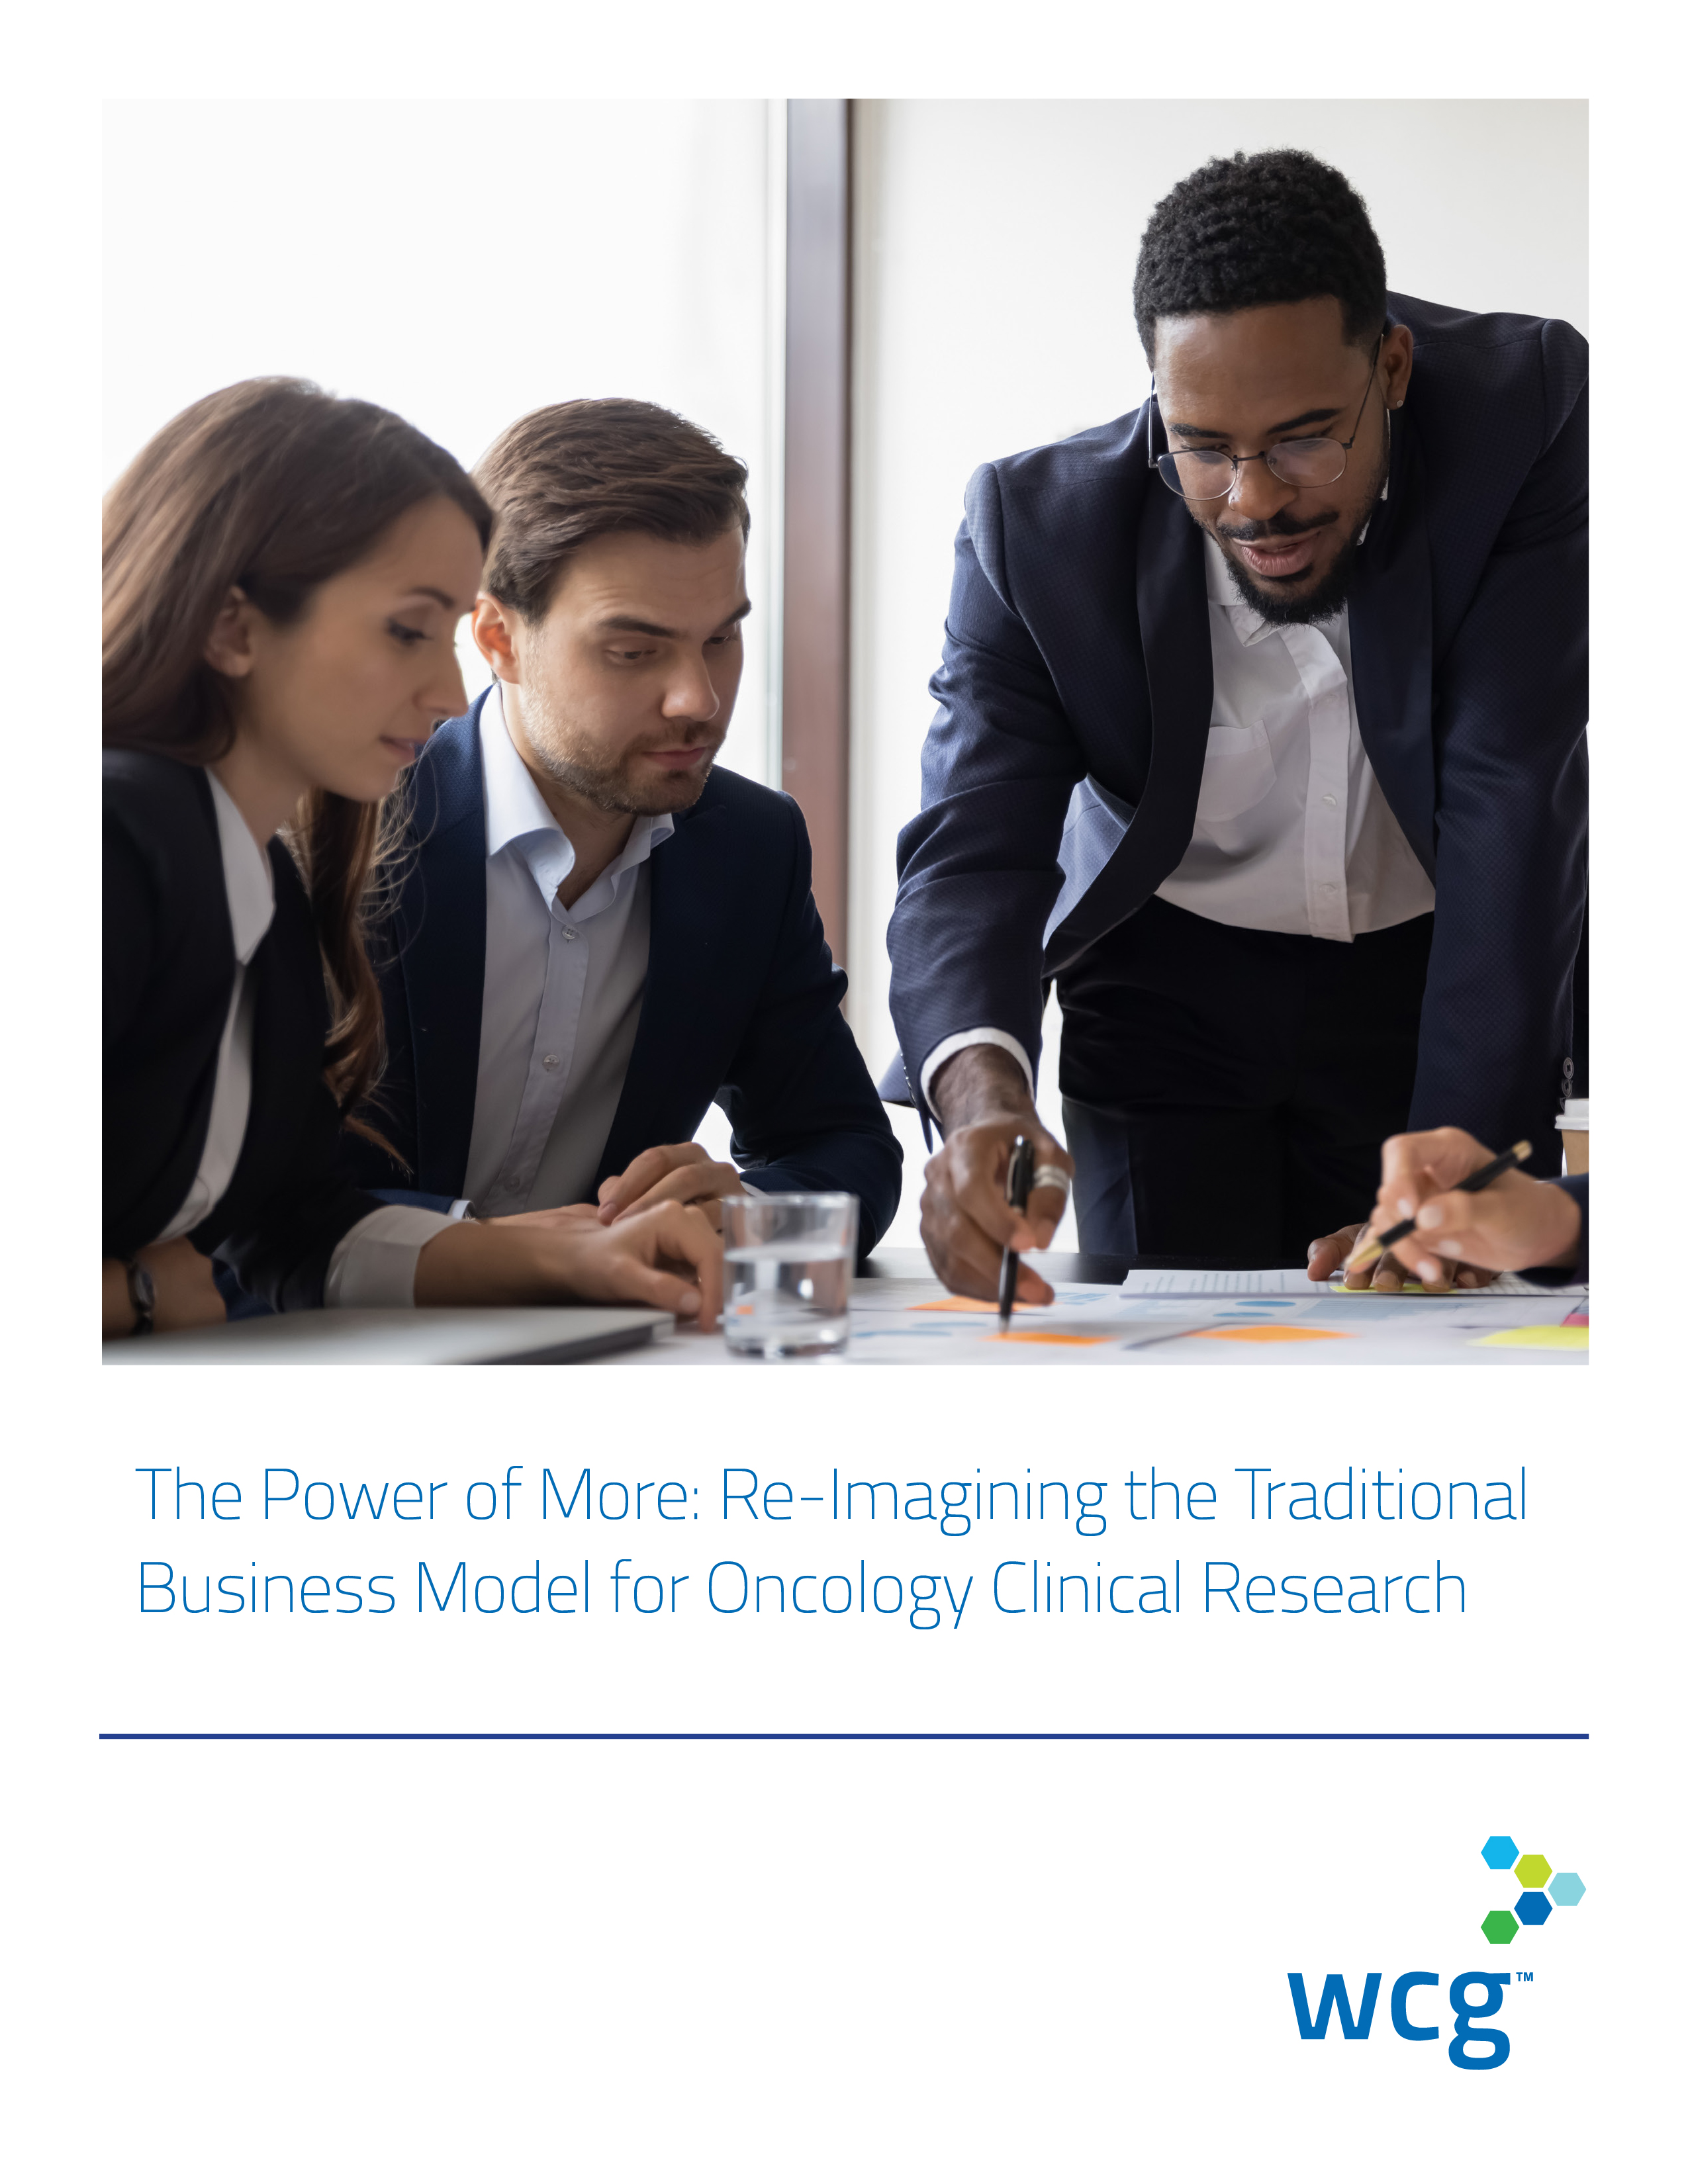 The Power of More Re-Imagining the Traditional Business Model for Oncology Clinical Research